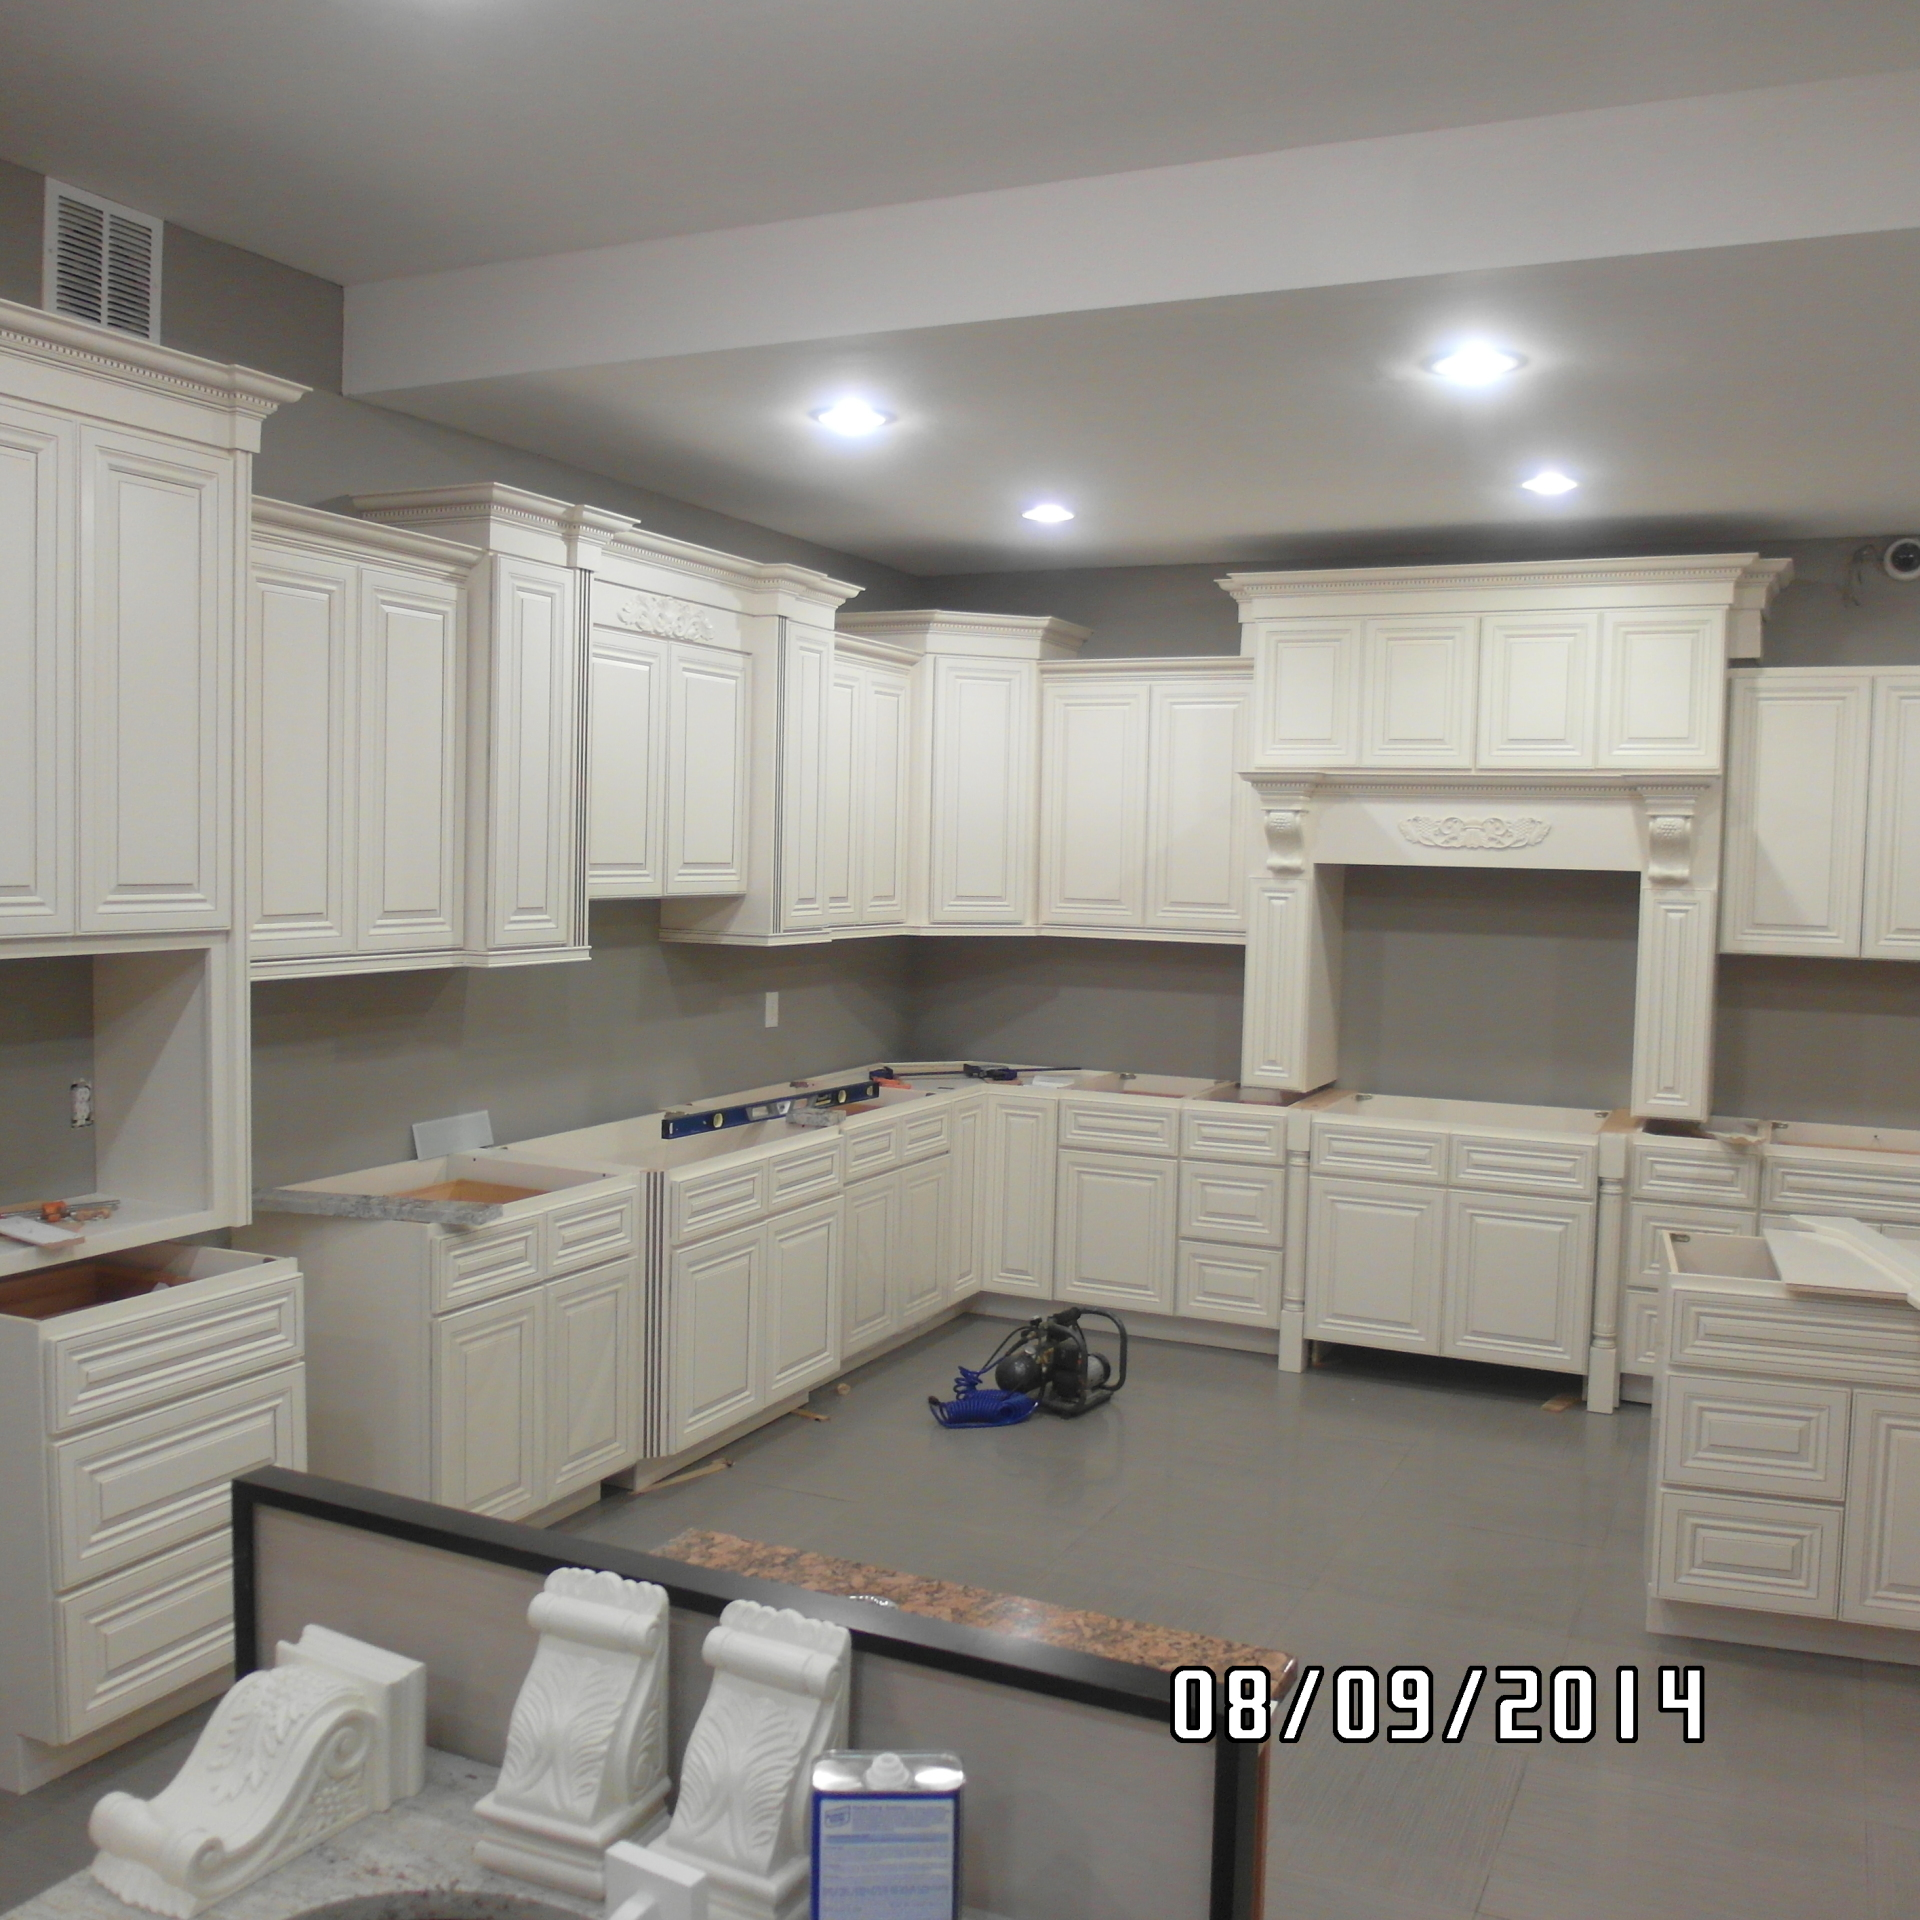 PREFABRICATED CABINETS